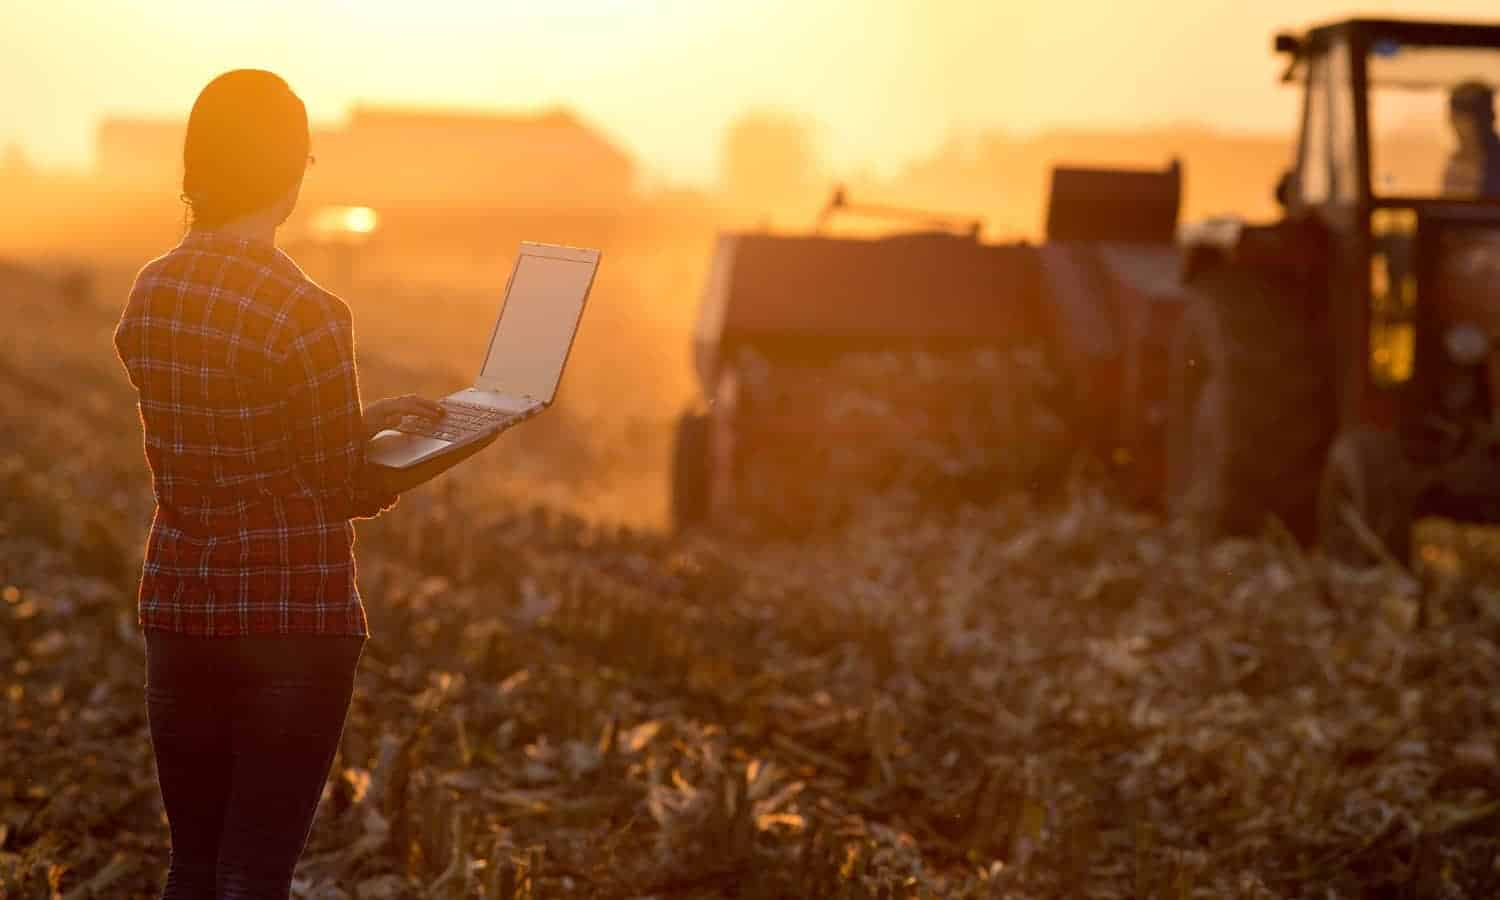 The future of farmers in South Asia depends on innovations like geospatial tools that can identifiy available fresh water resources, developed by CIMMYT.